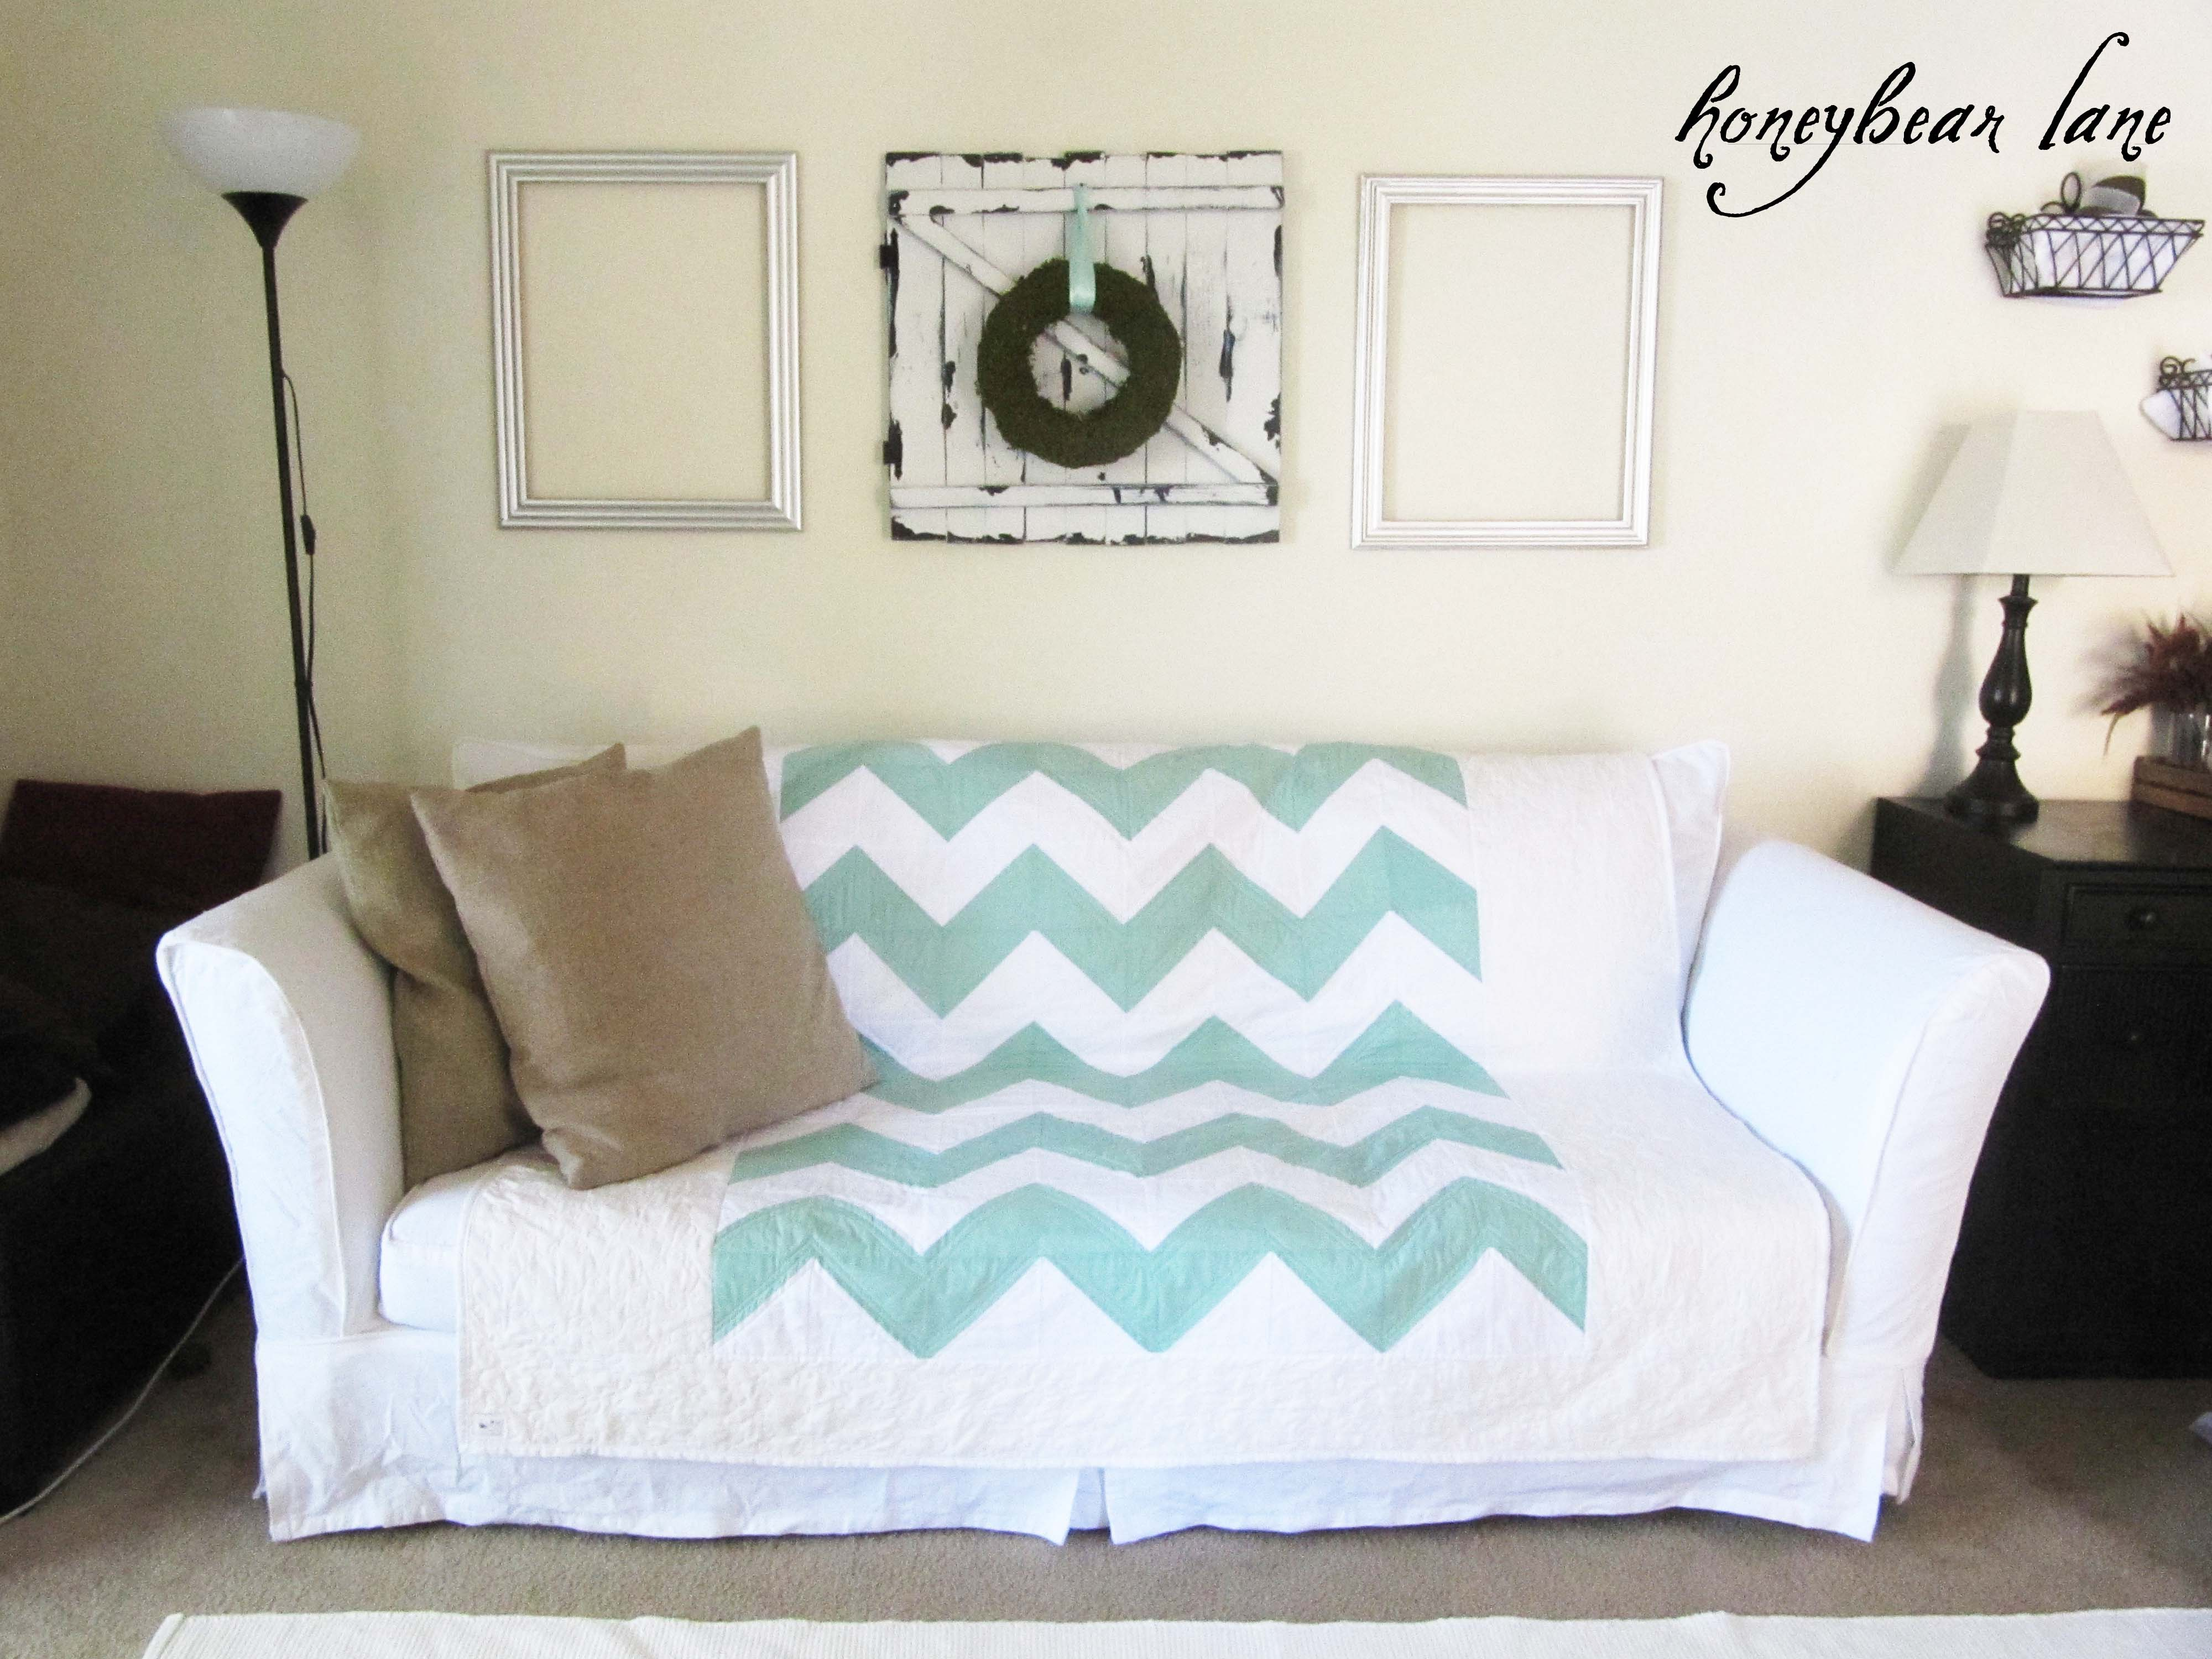 How To Make A Slipcover Part 2 Reveal